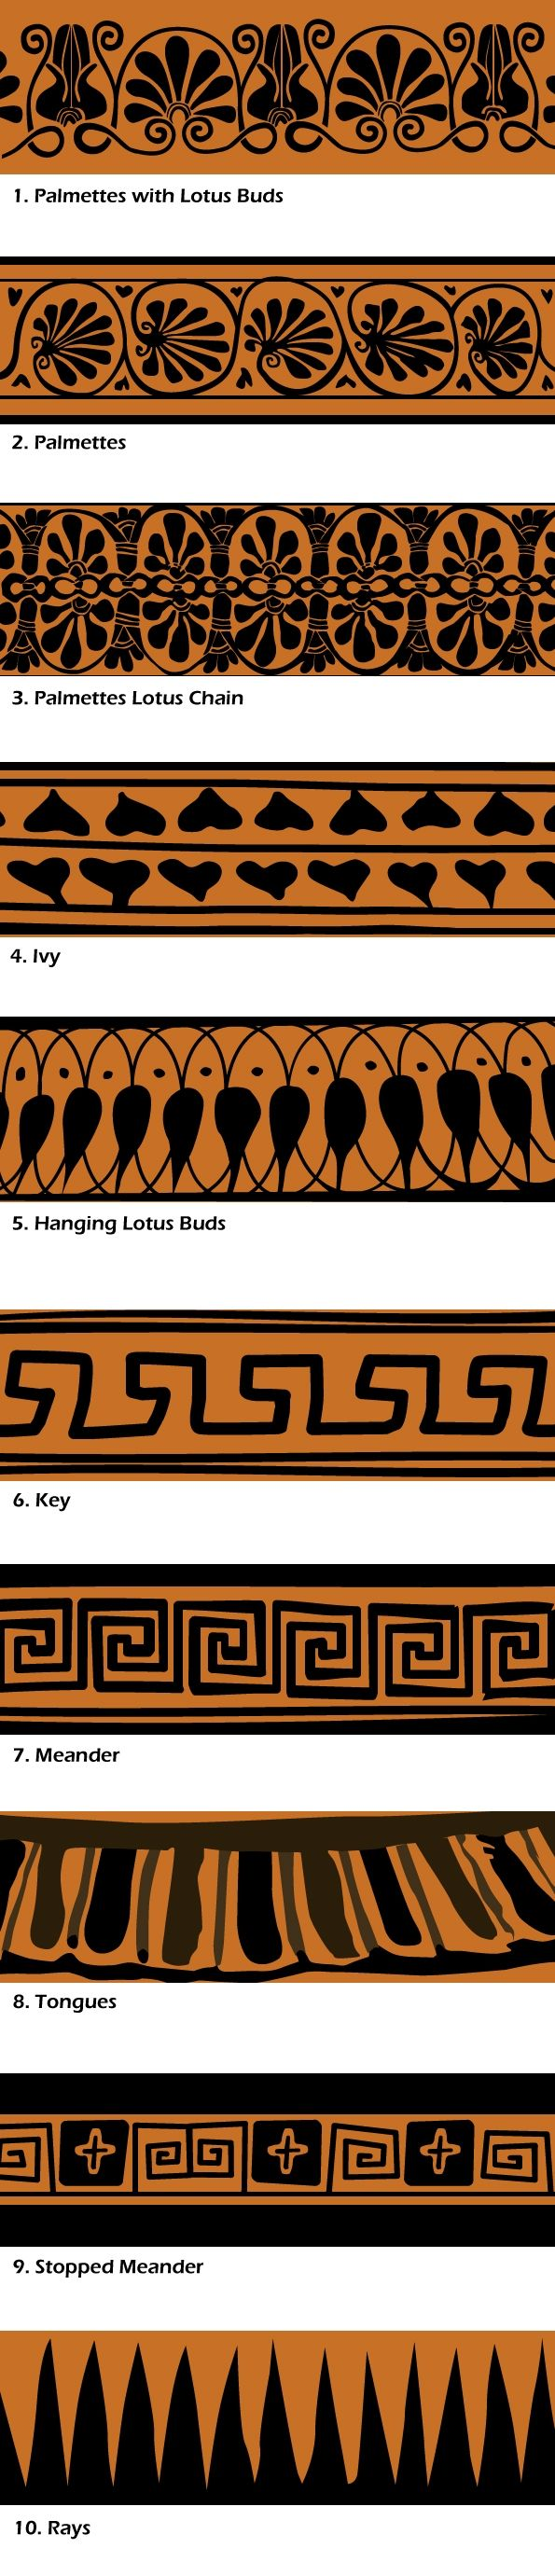 greek pottery patterns - referencing for pysanky ideas - we can see the color palet that they used black with an orange and orange with black.